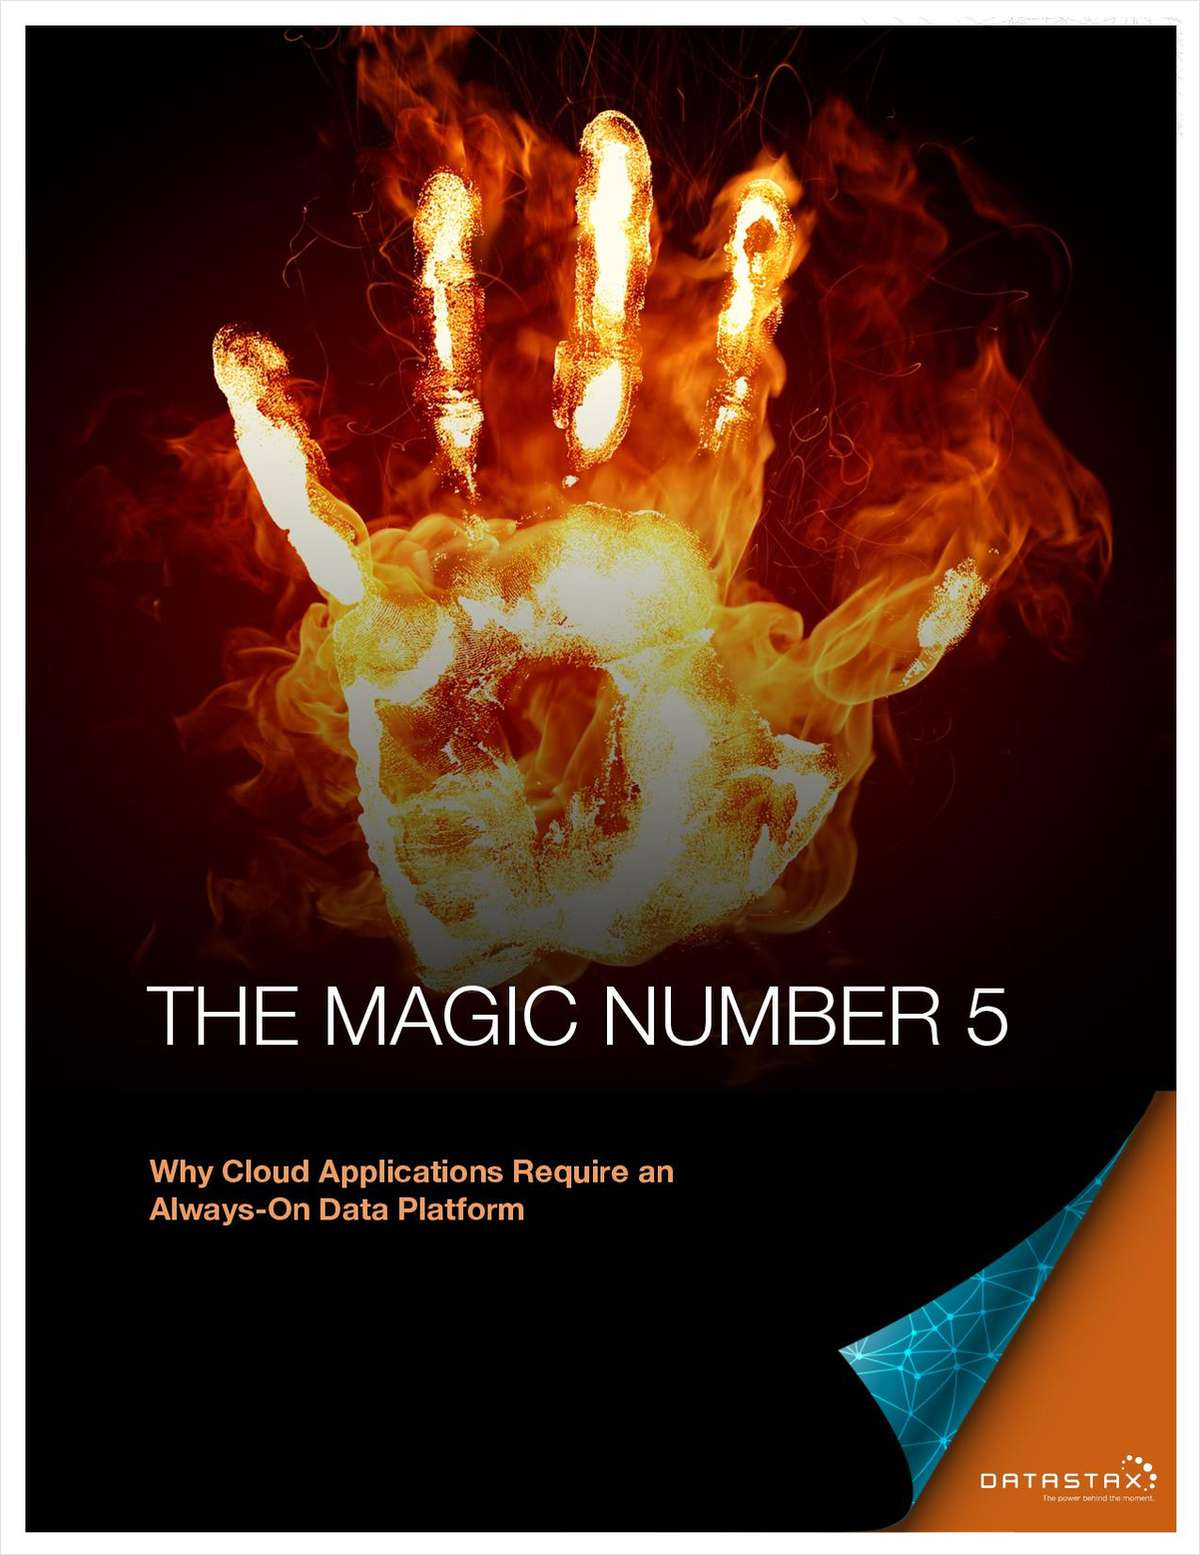 The Magic Number 5 - Why Cloud Applications Require an Always-On Data Platform